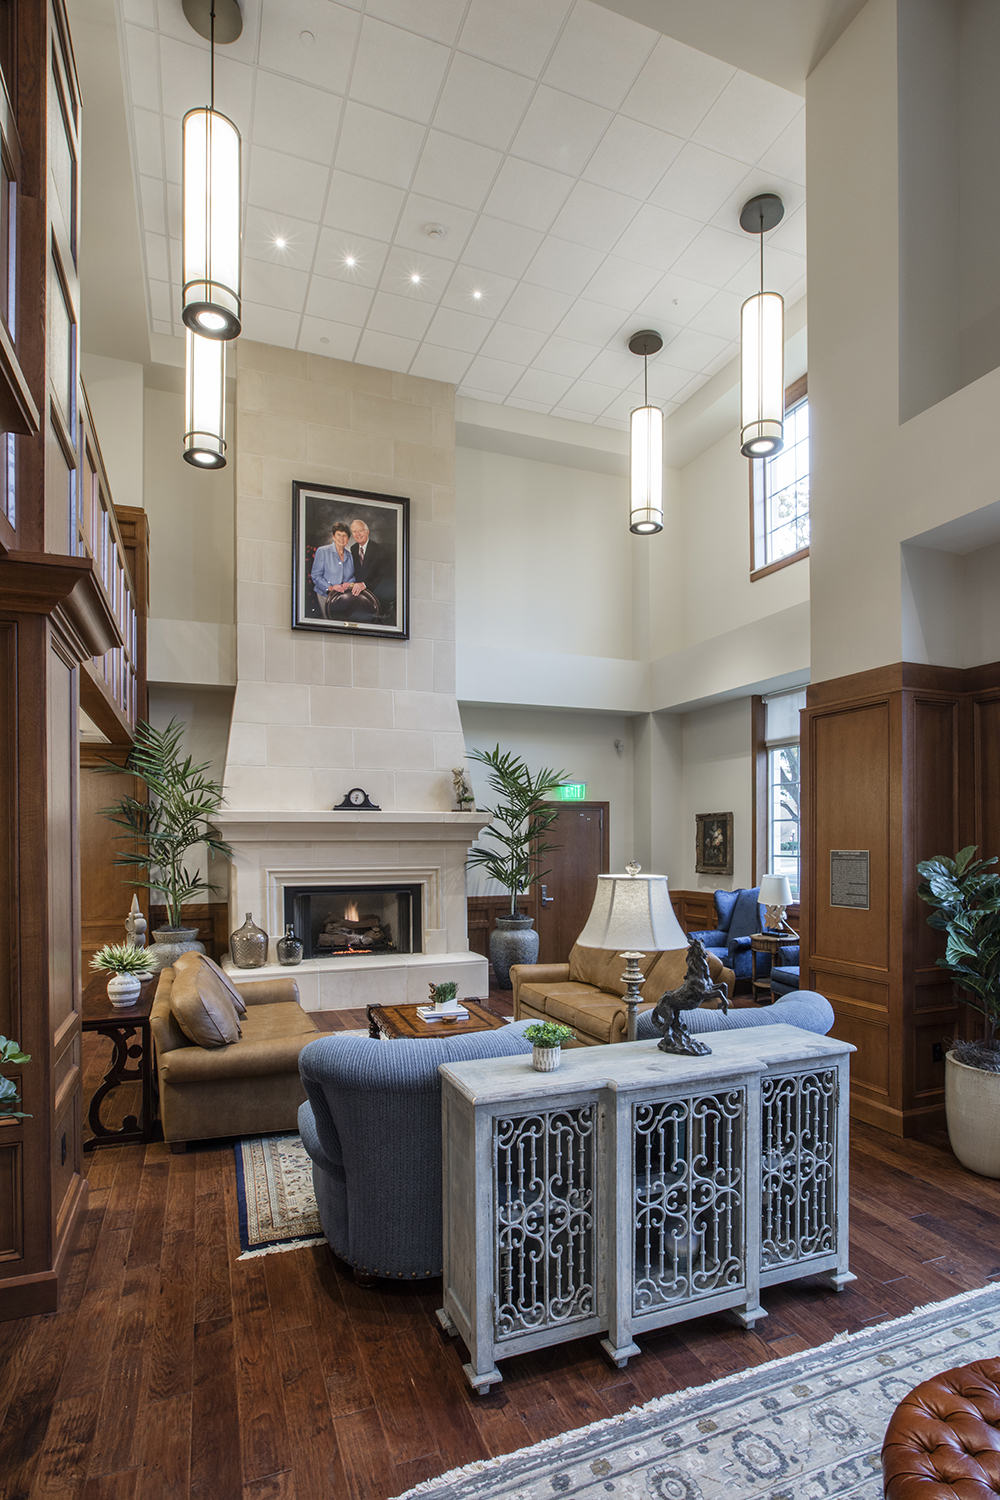 Universities In Oklahoma >> University of Oklahoma Residential Colleges - Wallace ...